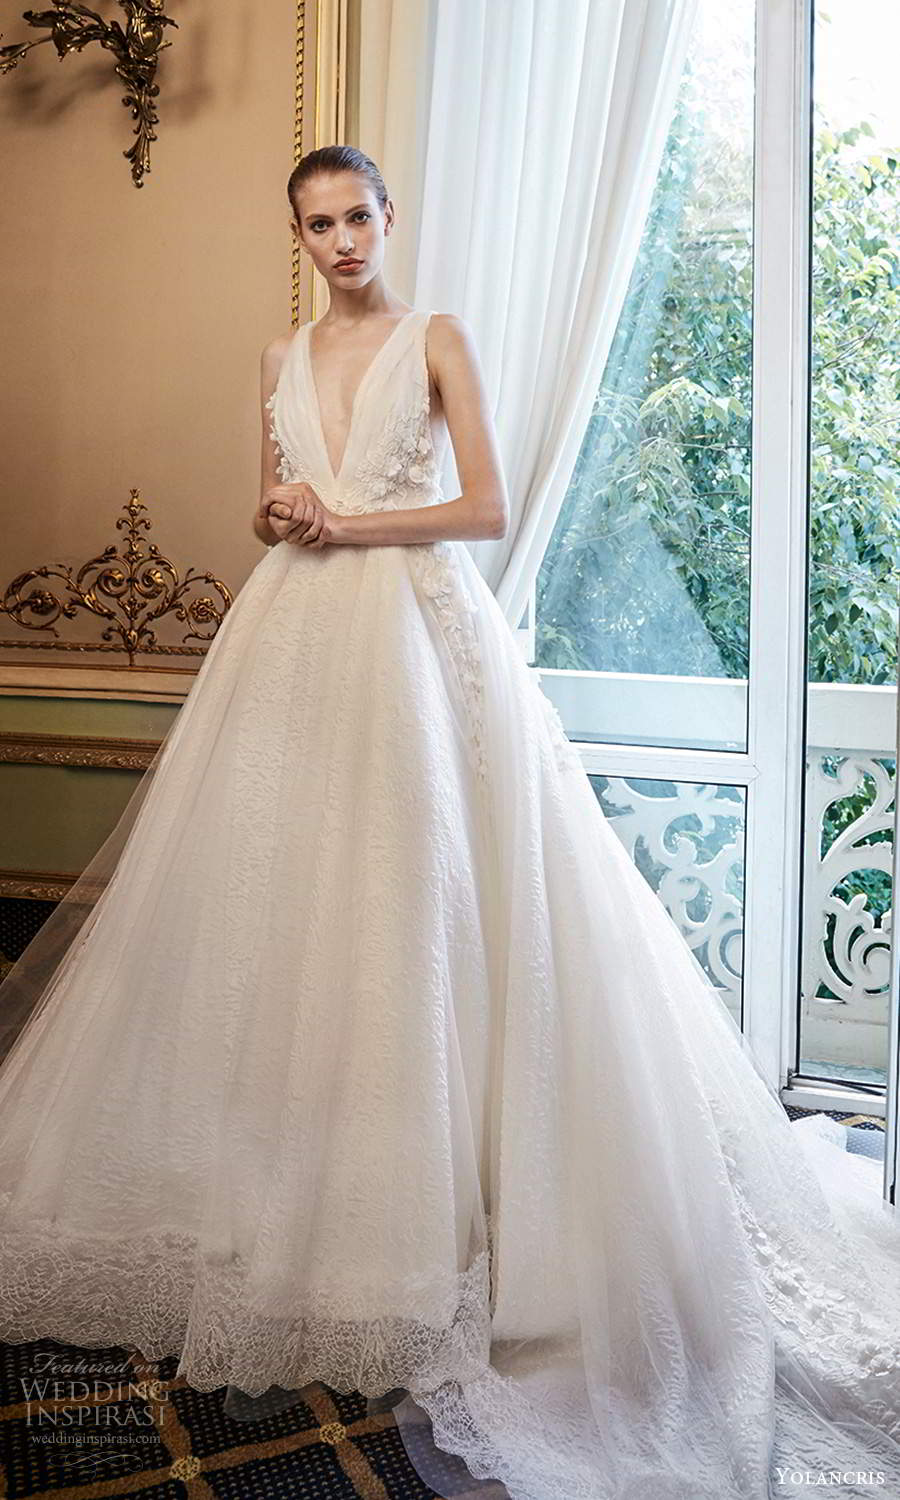 yolancris 2020 bridal couture sleeveless straps plunging v neckline embellished bodice a line ball gown wedding dress cathedral htrain (19) mv